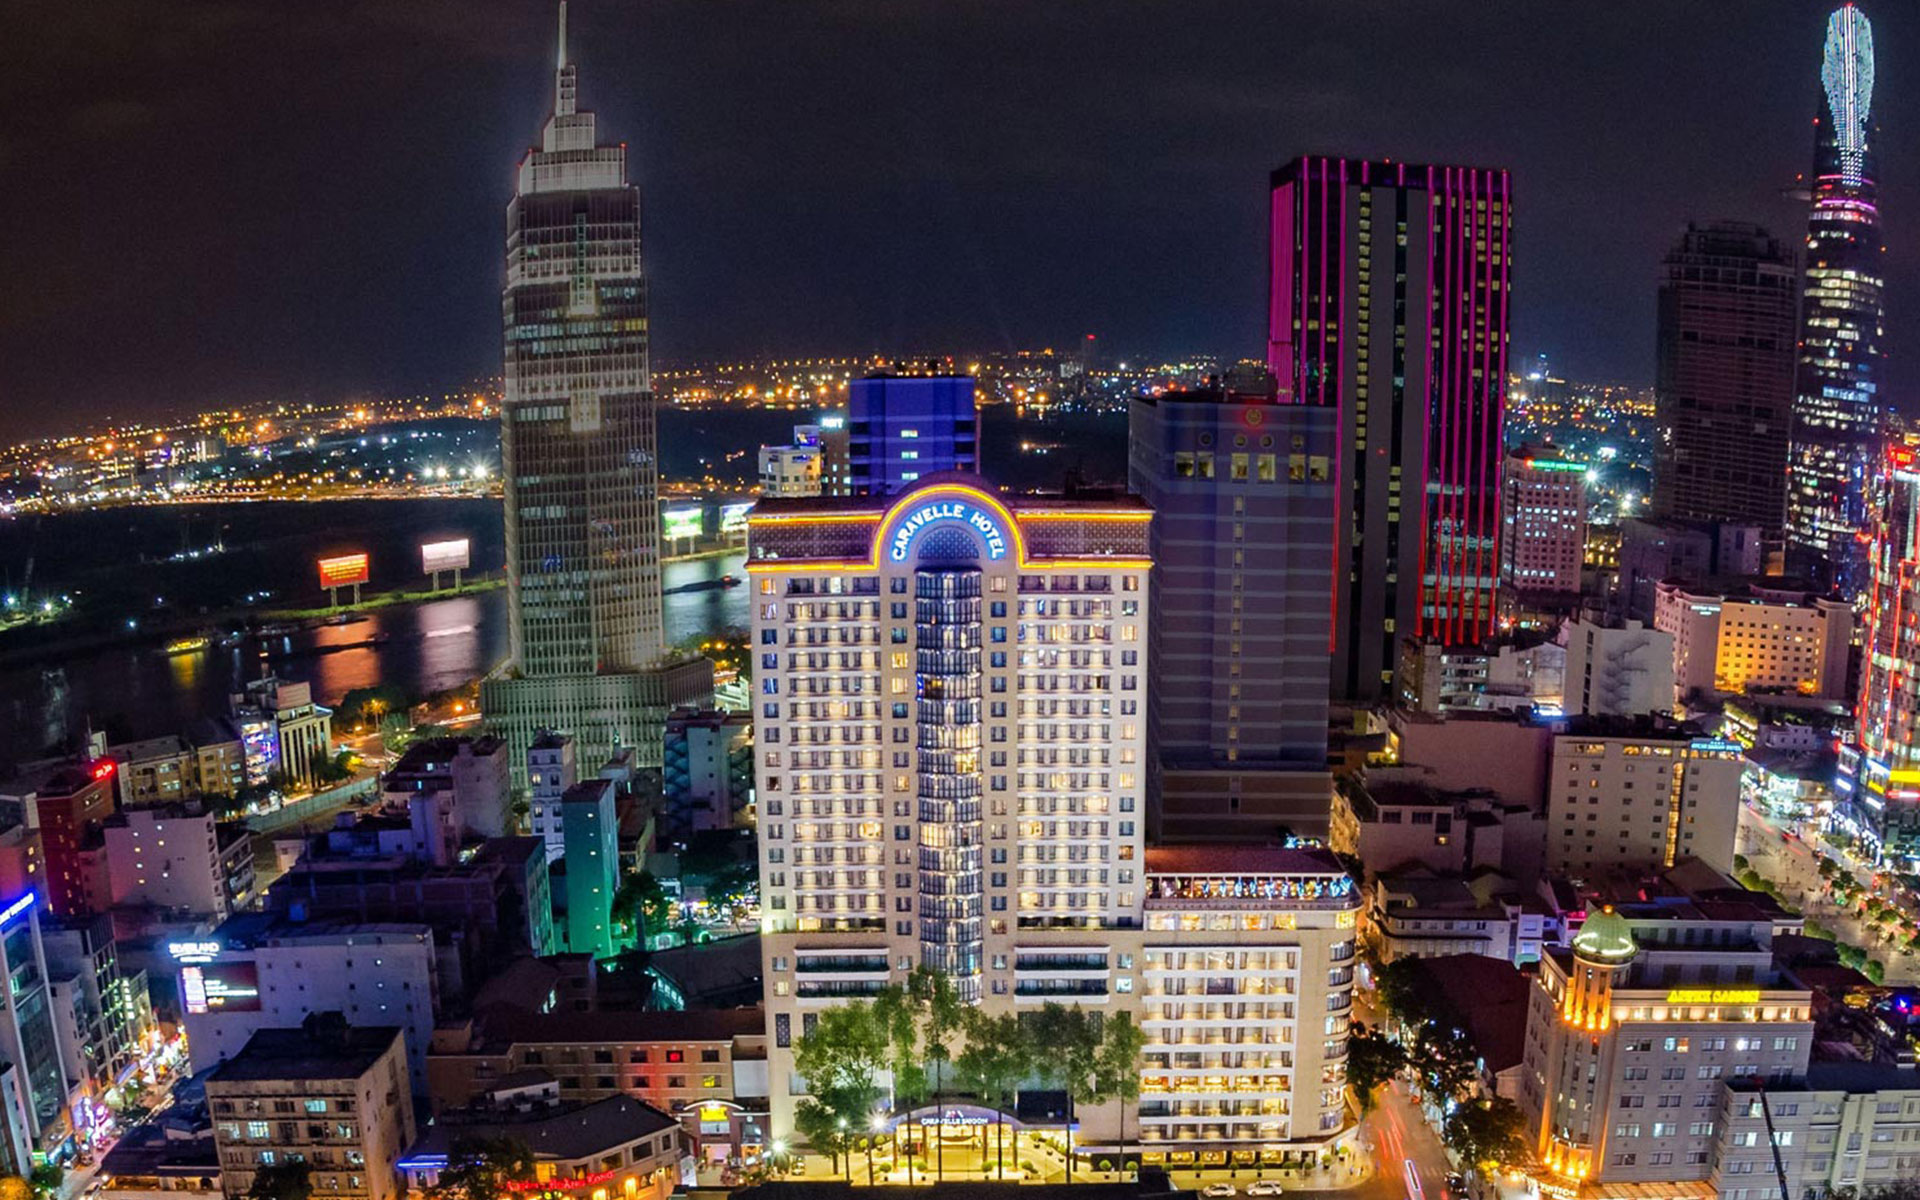 Sparkling Caravelle Hotel Saigon at night